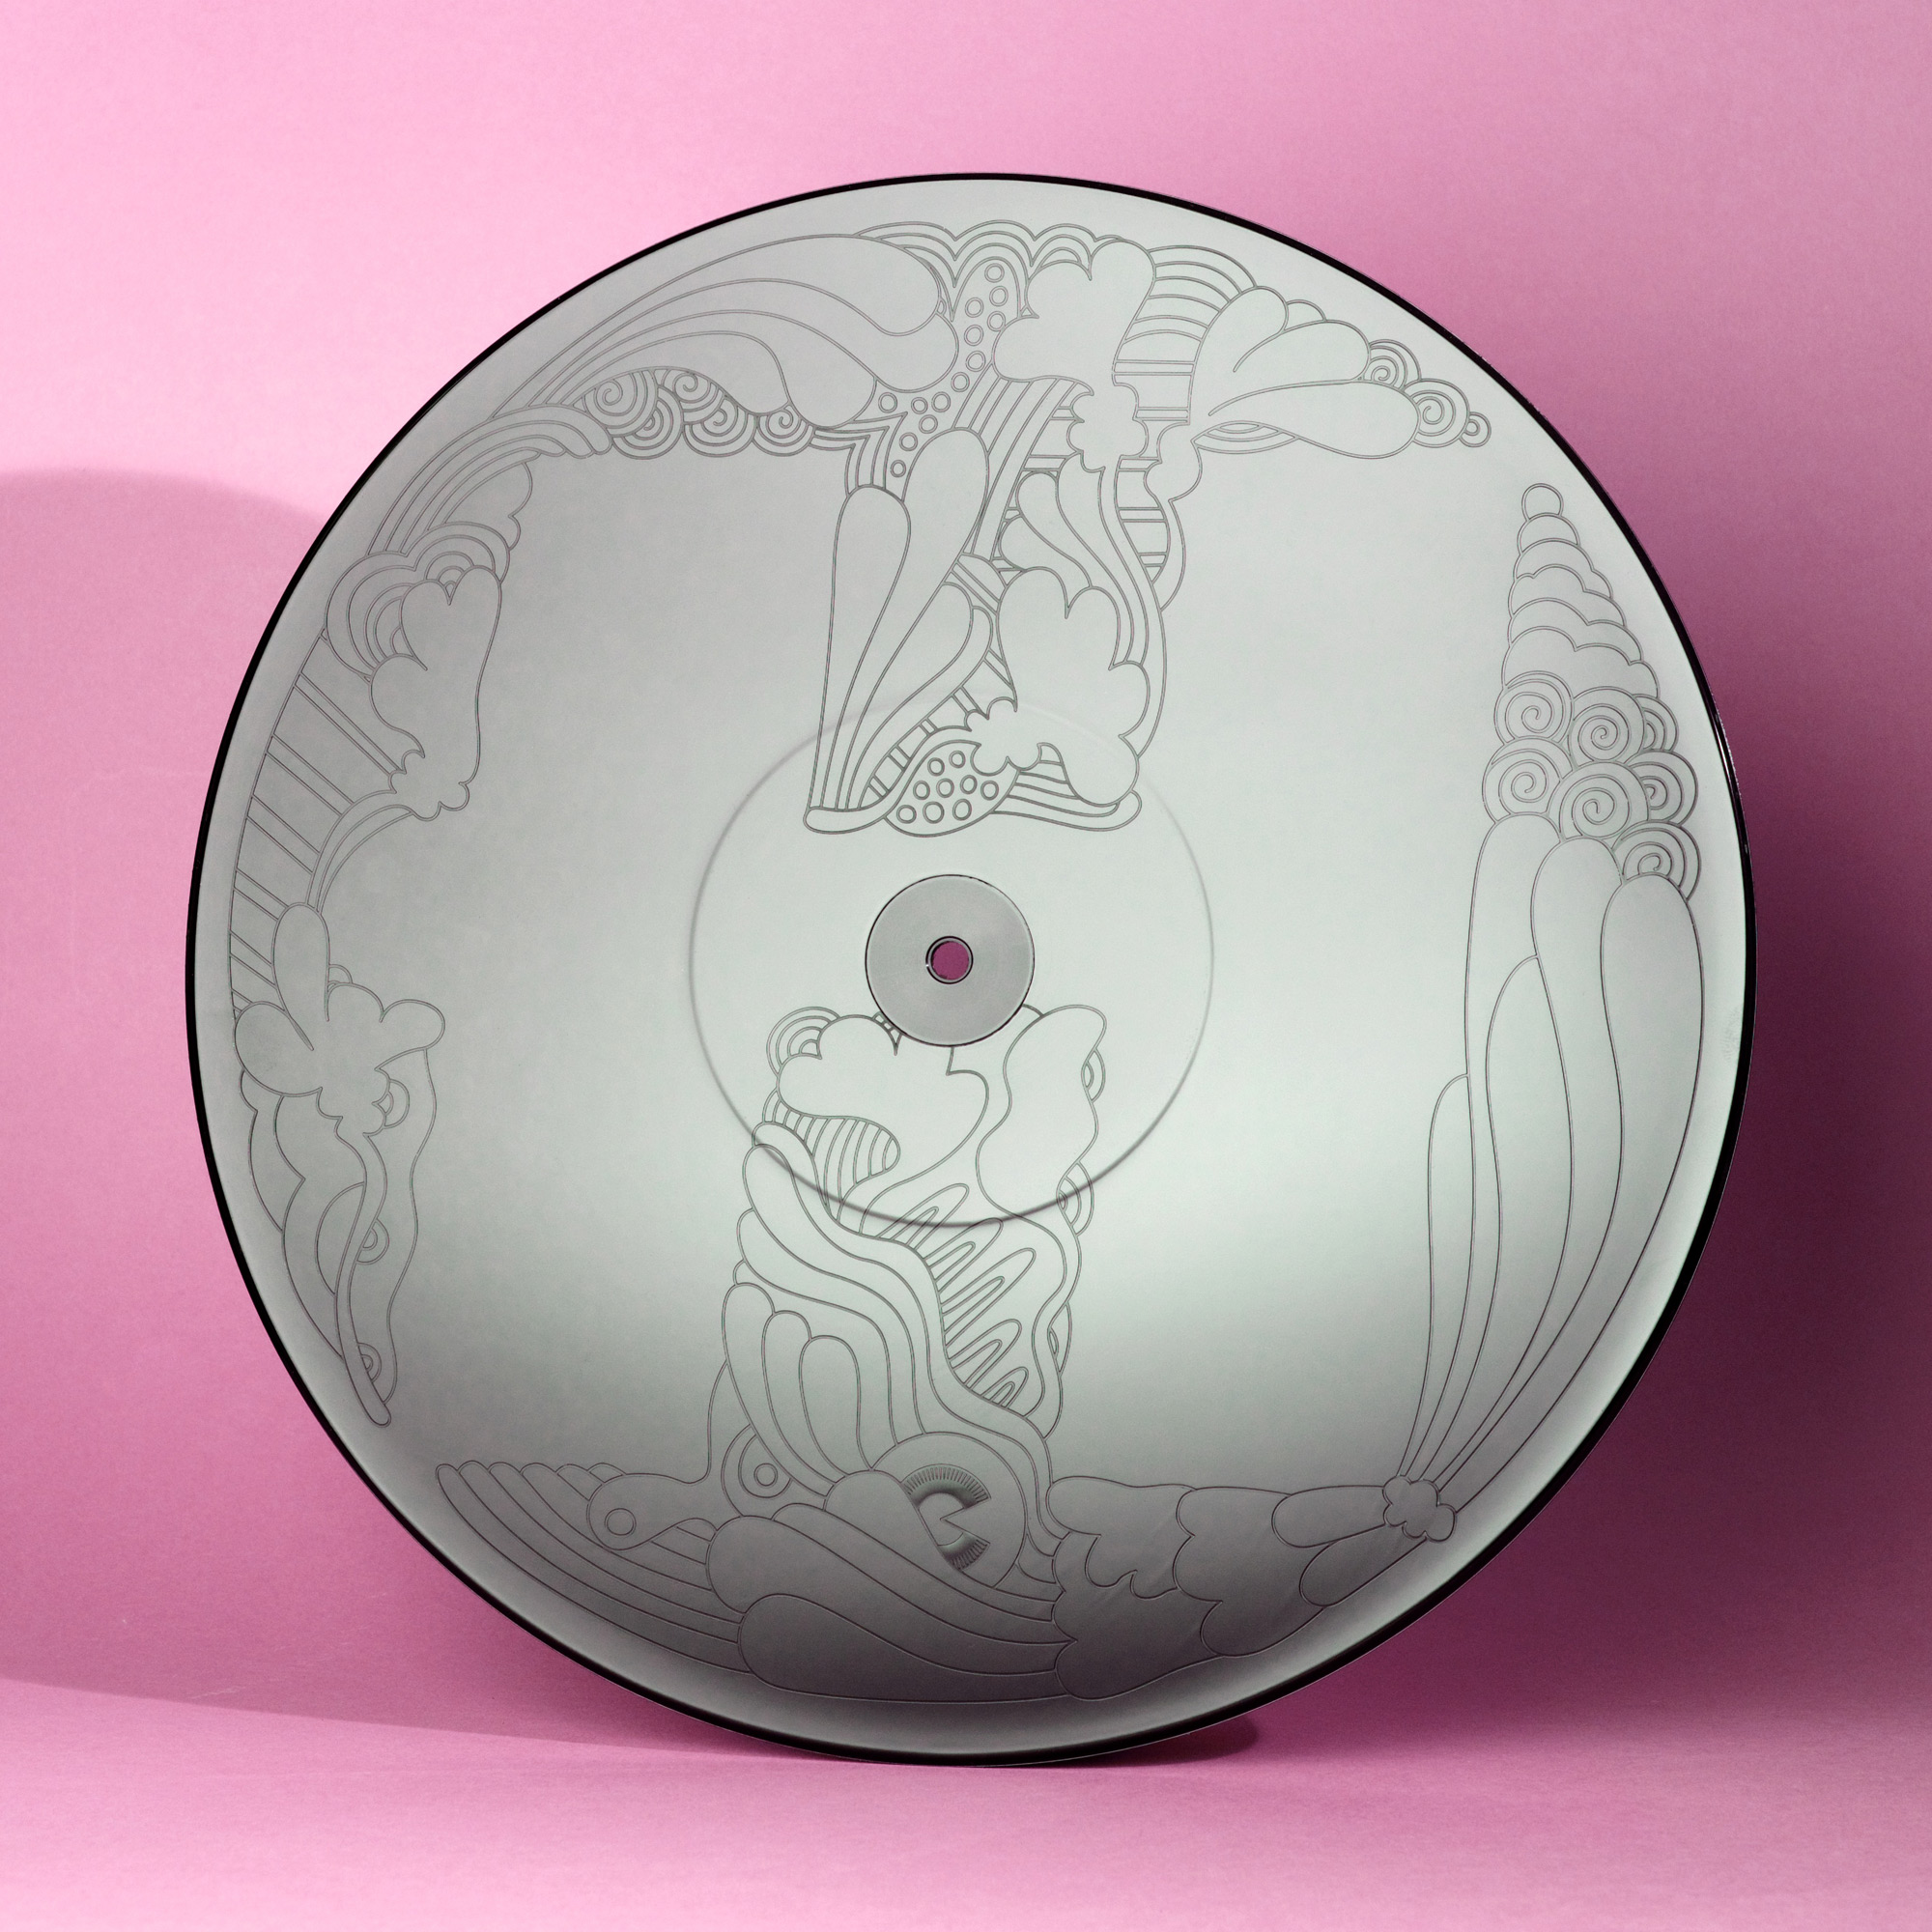 Etched vinyl disc for Urbandawn's 'Come Together' record